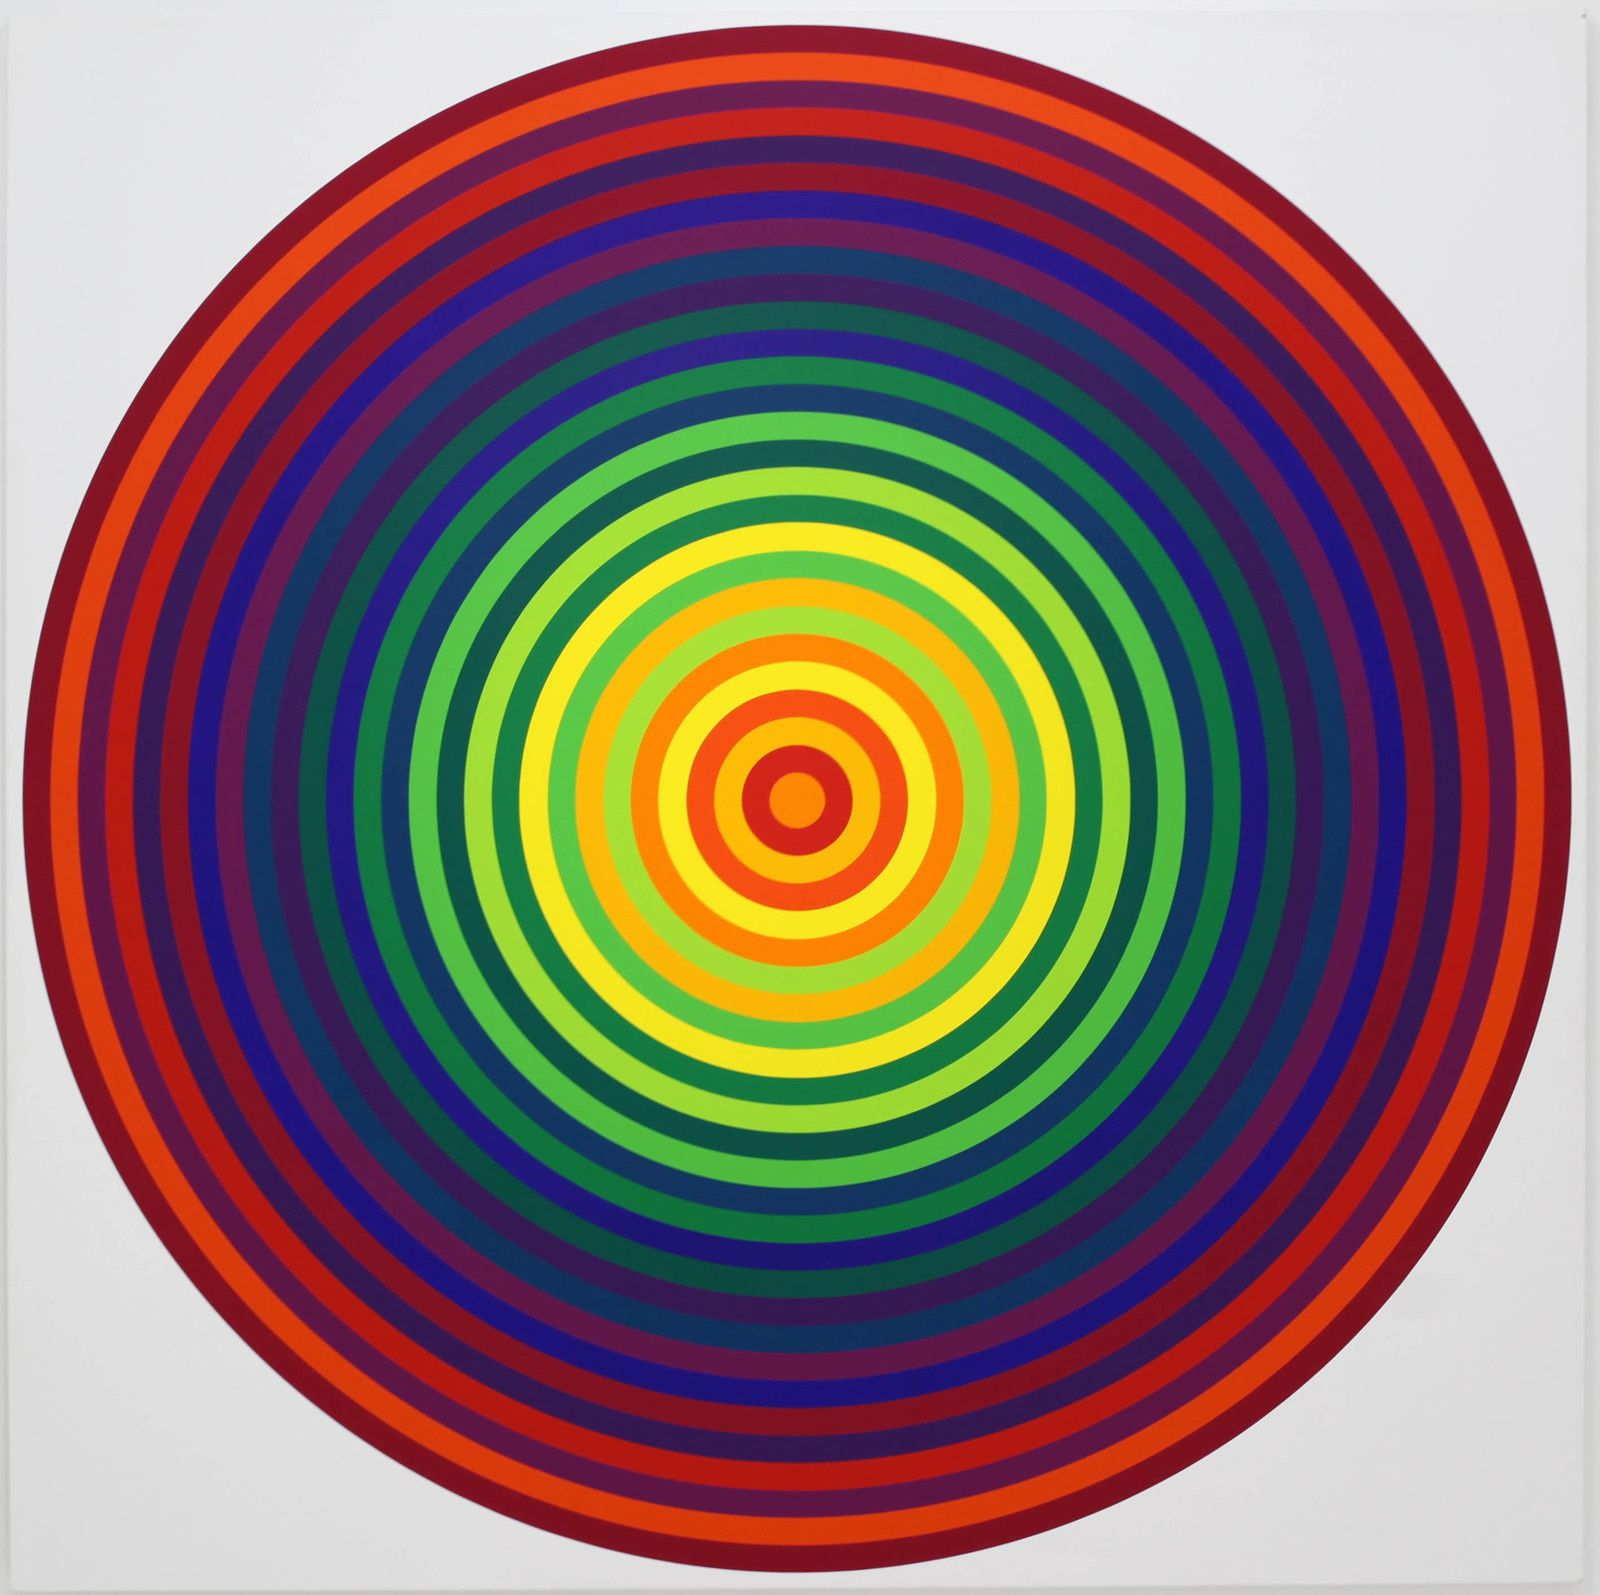 """Série 23 N° 14-11"", 1970 de Julio LE PARC - Courtesy Galerie Perrotin © Photo Éric Simon"